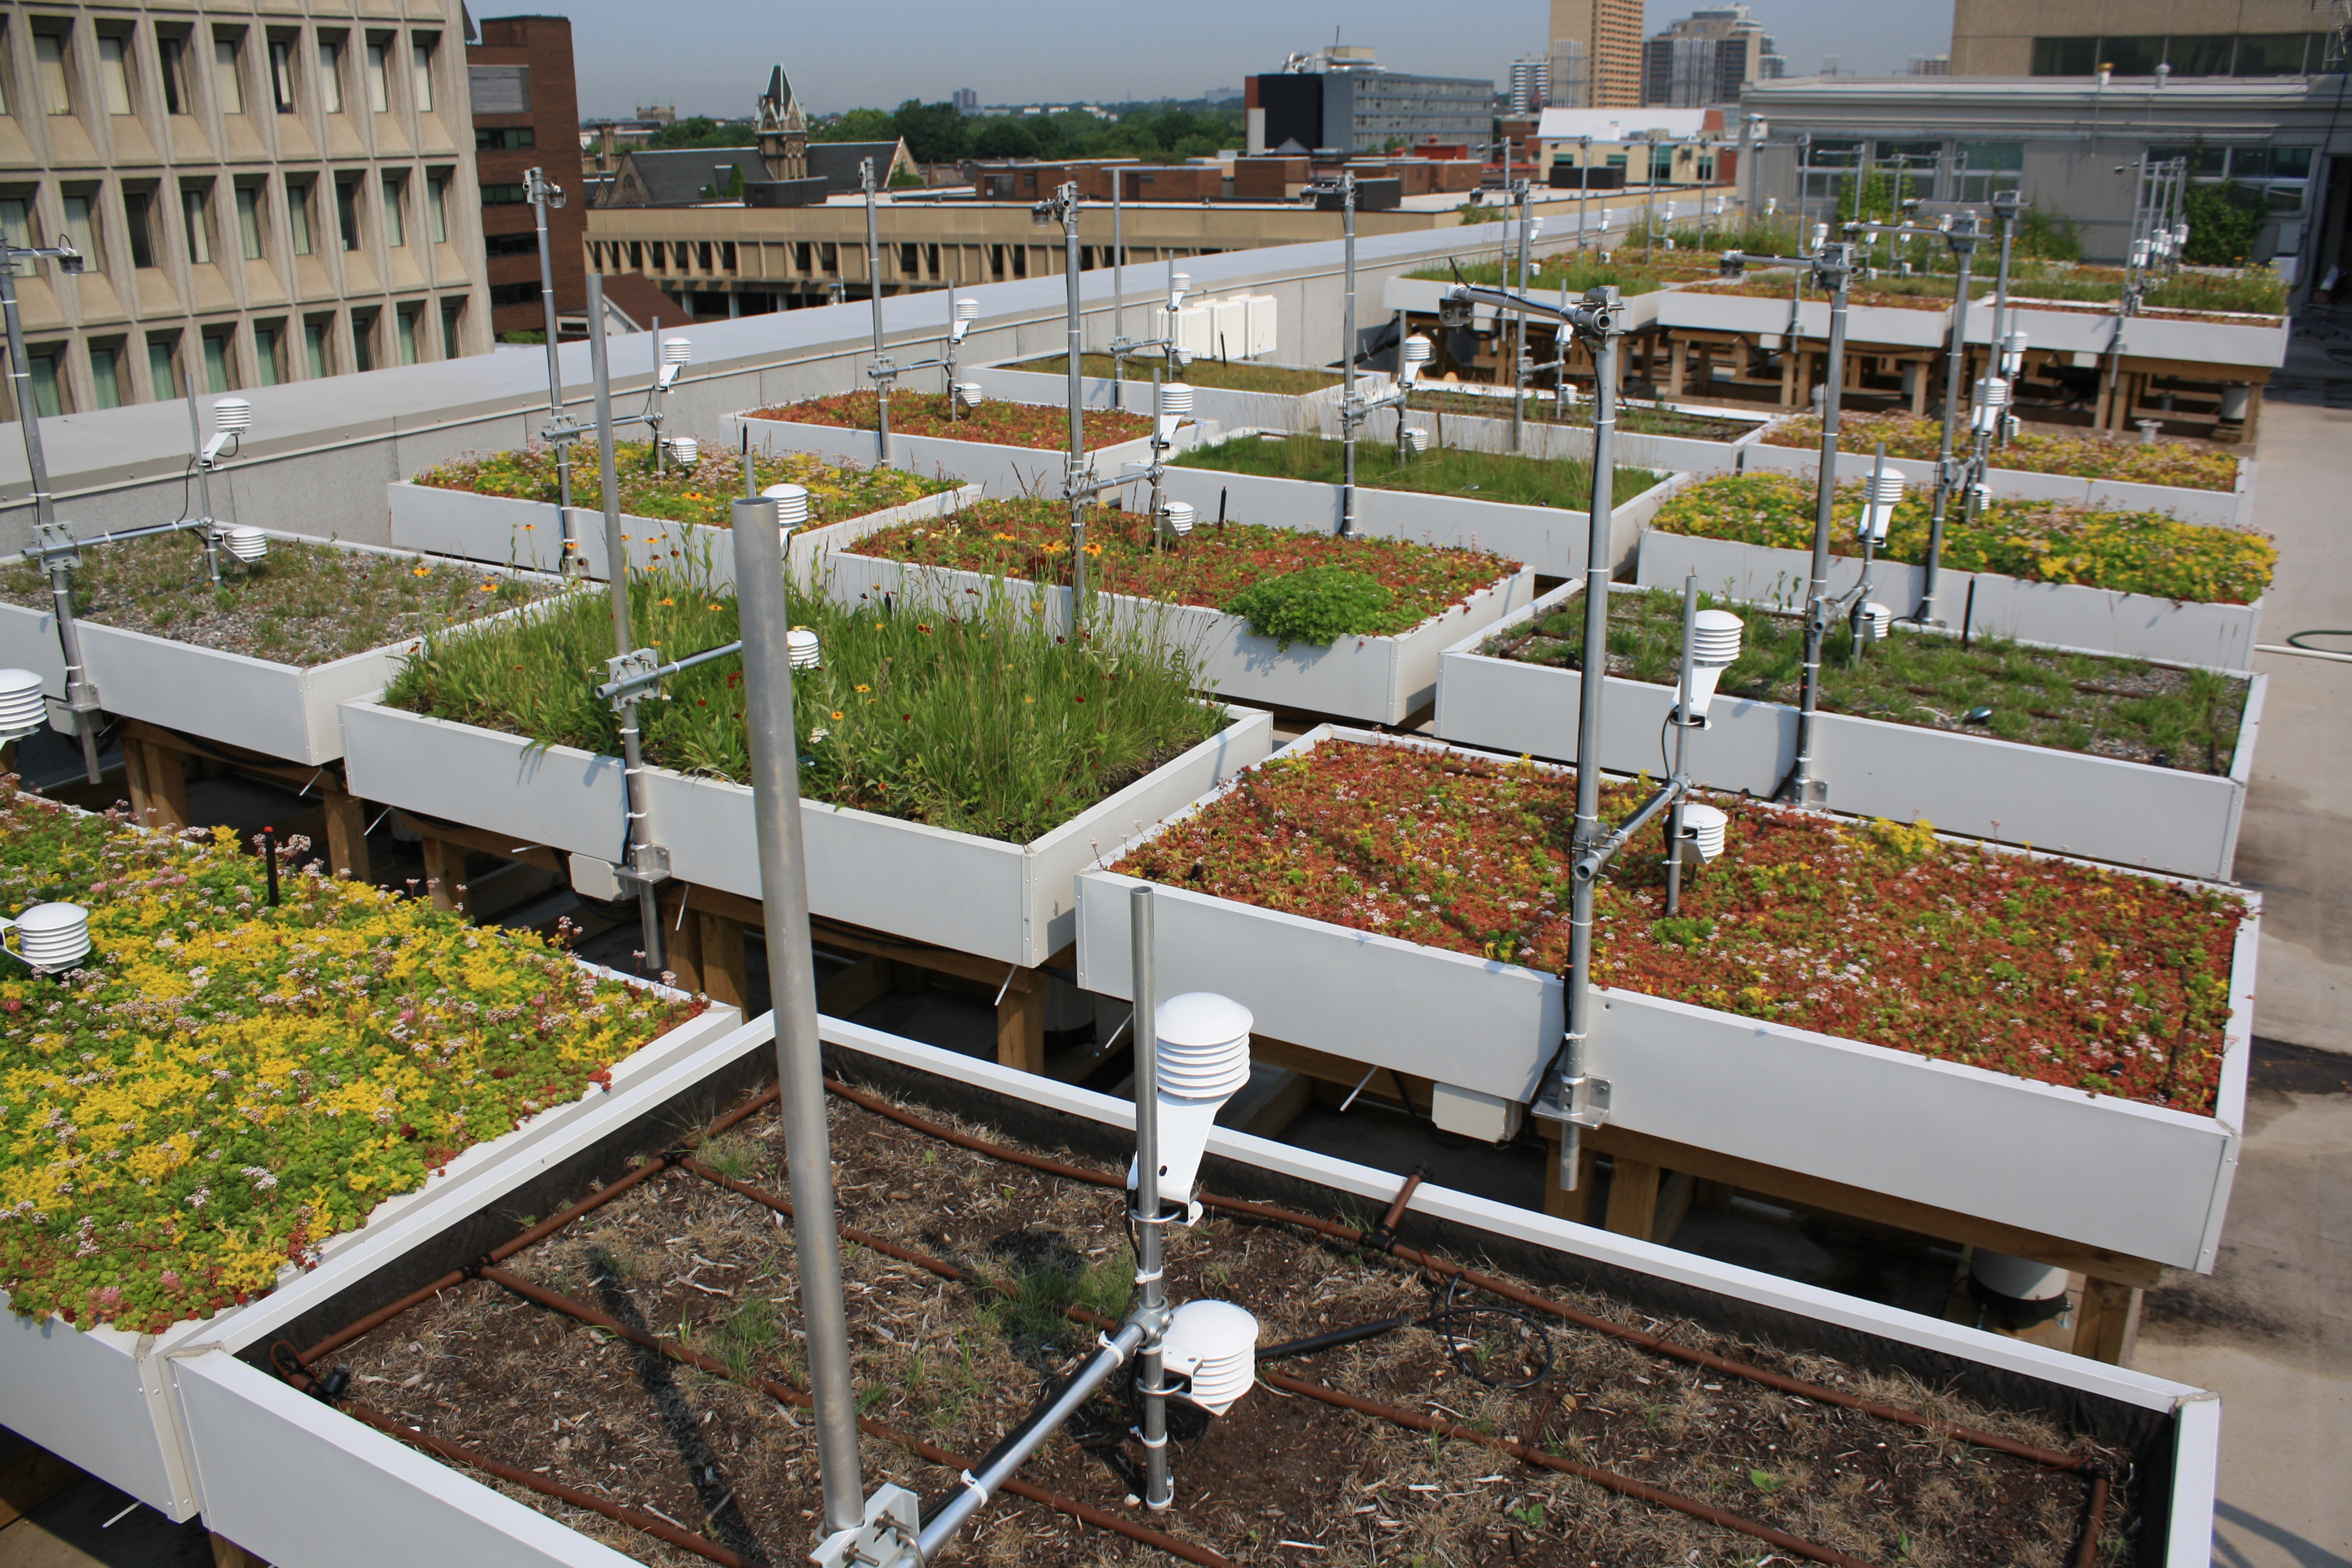 Asla 2013 Professional Awards Green Roof Innovation Testing Grit Laboratory